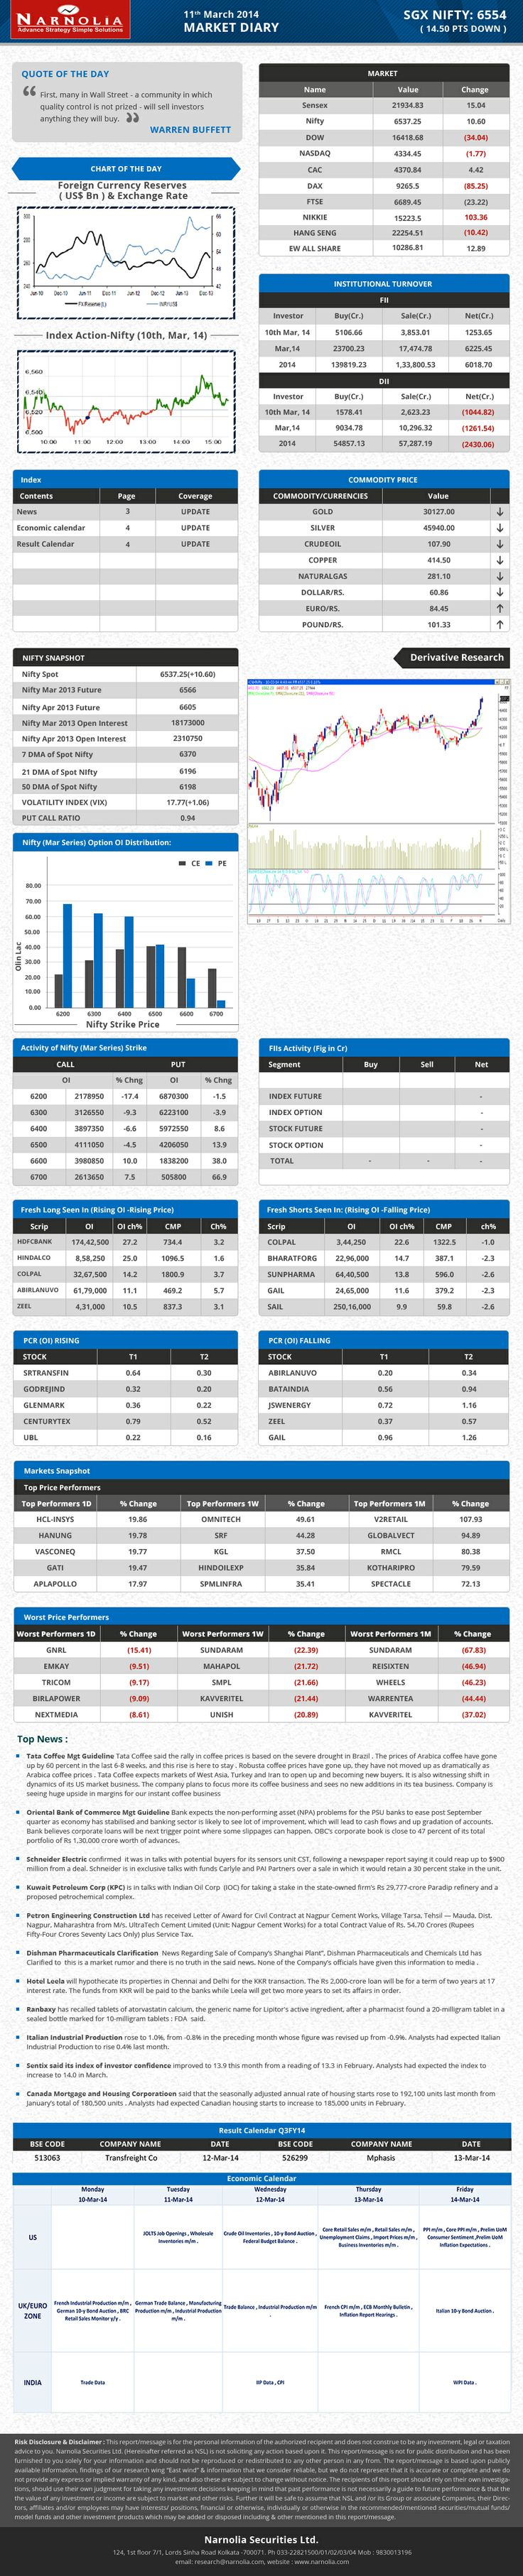 Best 25 gold rate chart ideas on pinterest weight for height snapshot and derivative research on indian stock market biocorpaavc